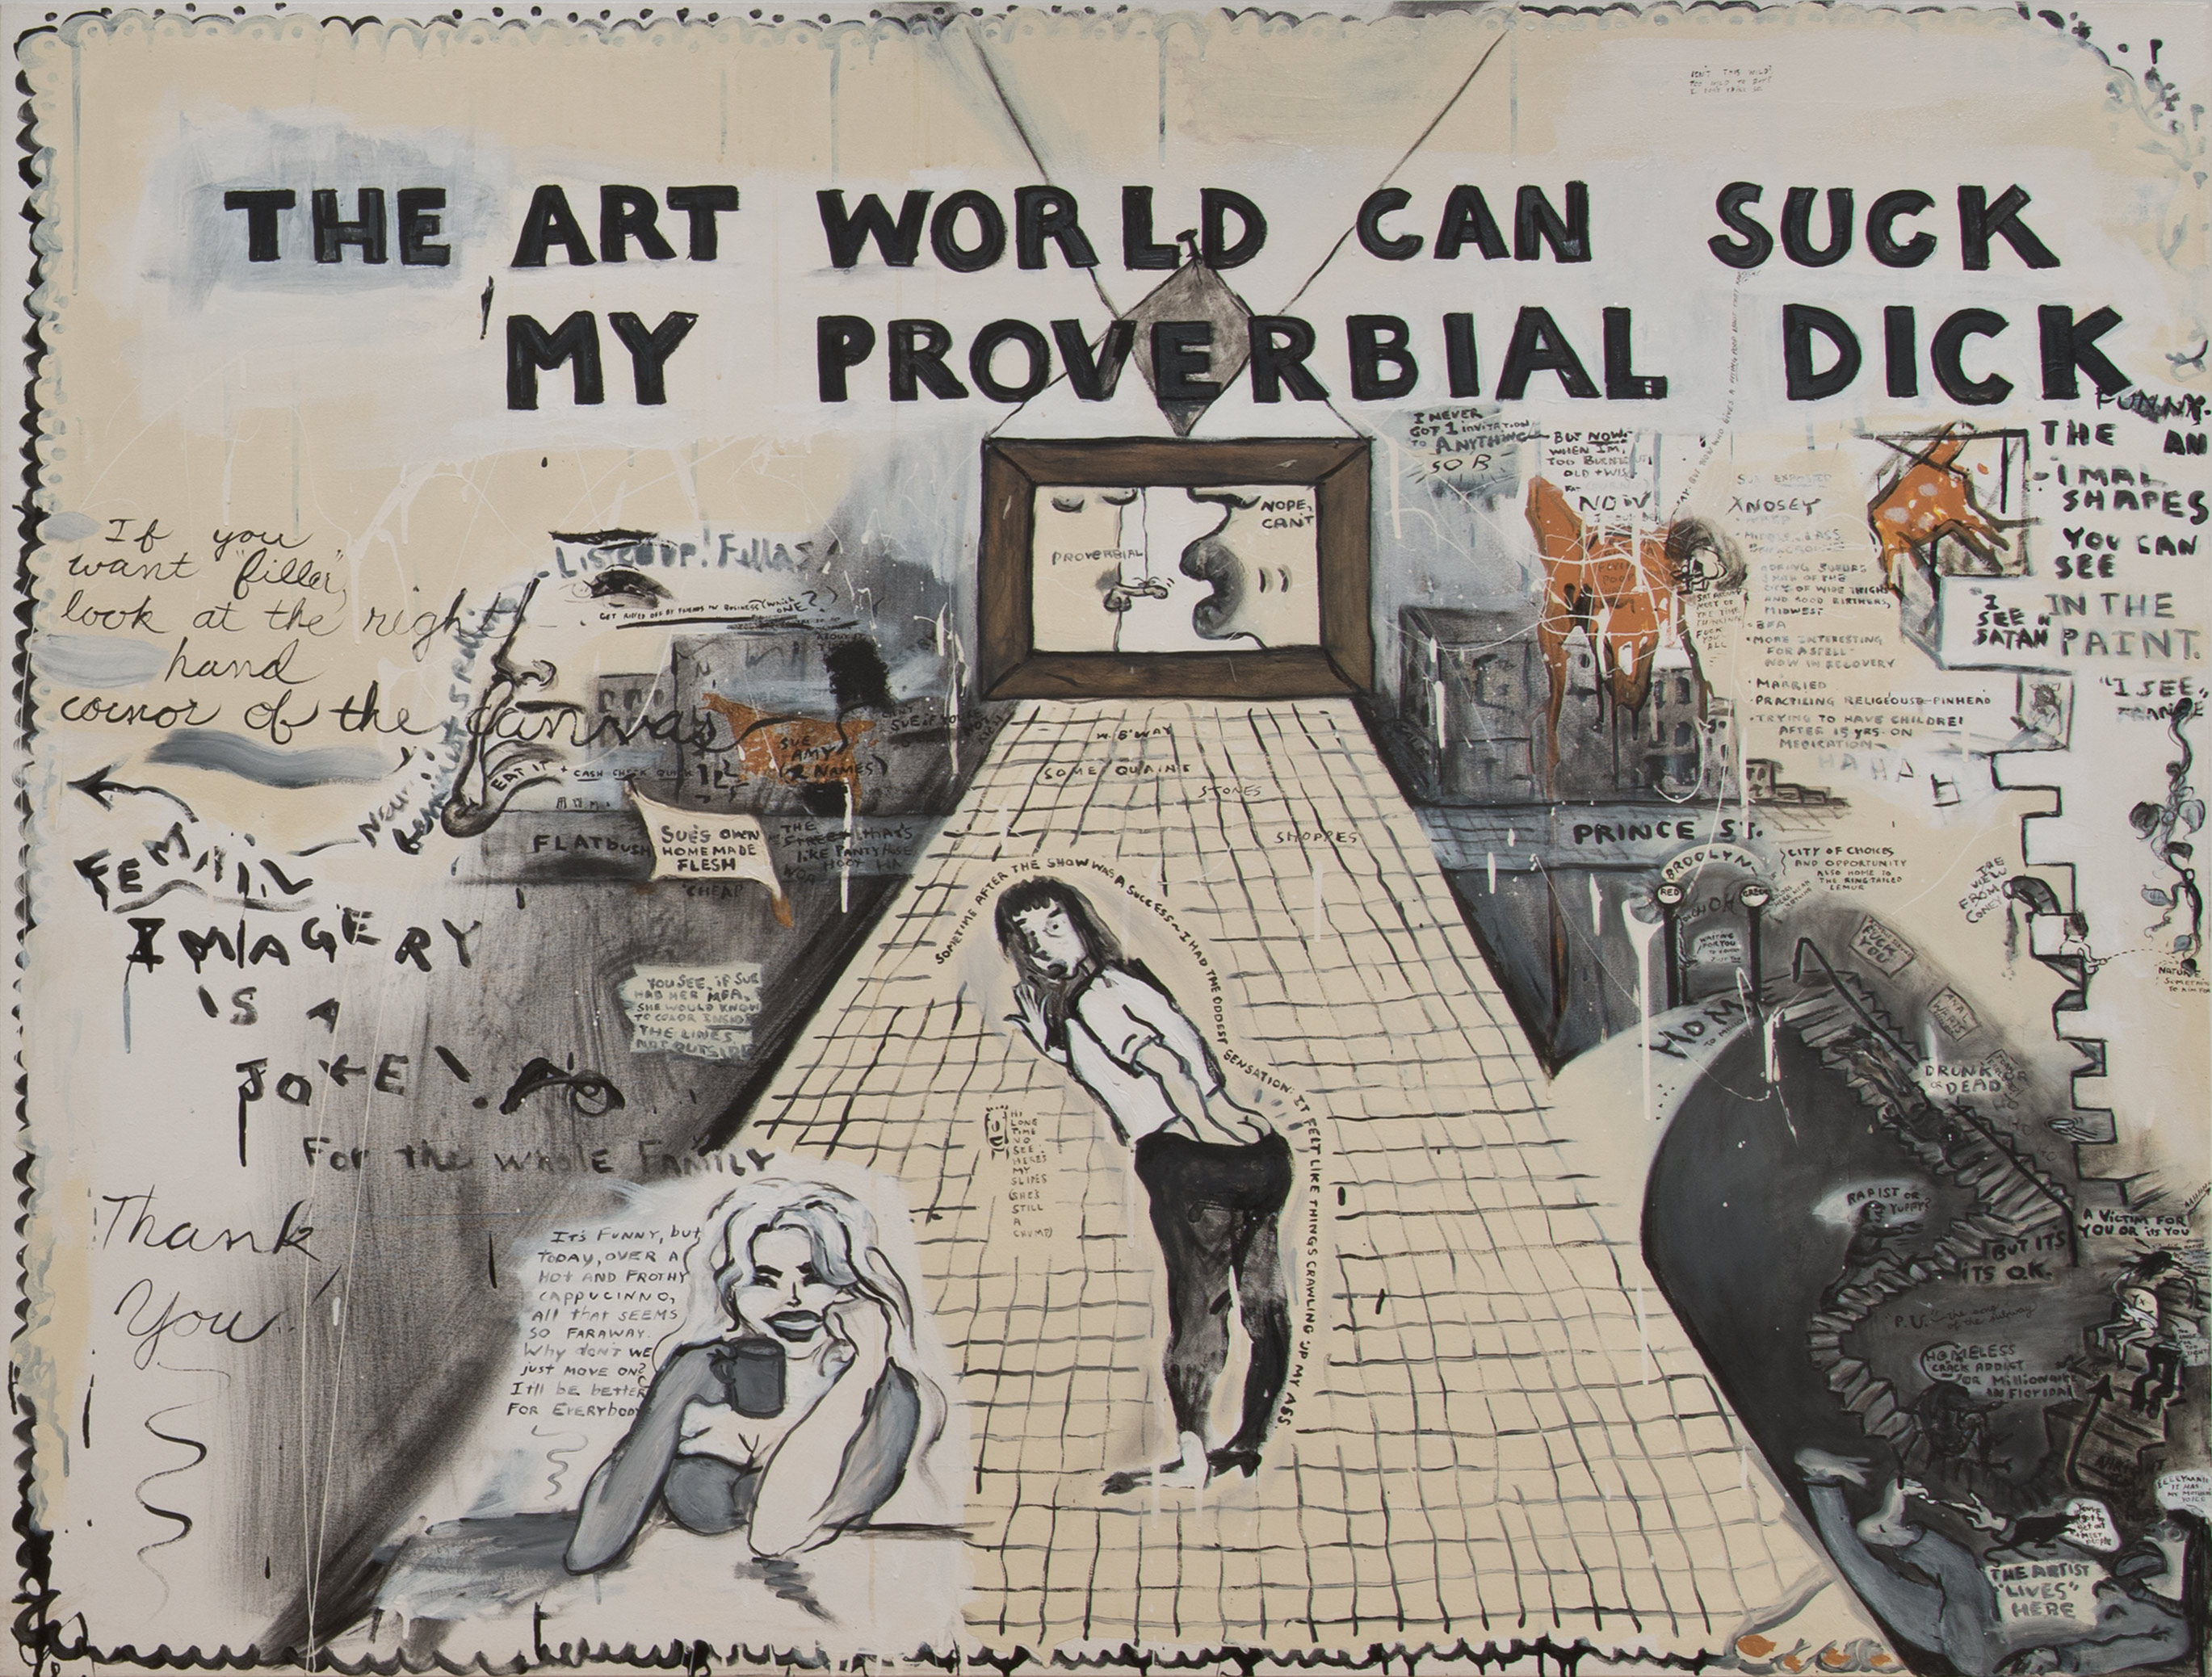 The Art World Can Suck My Proverbial Dick, by Sue Williams, 1992